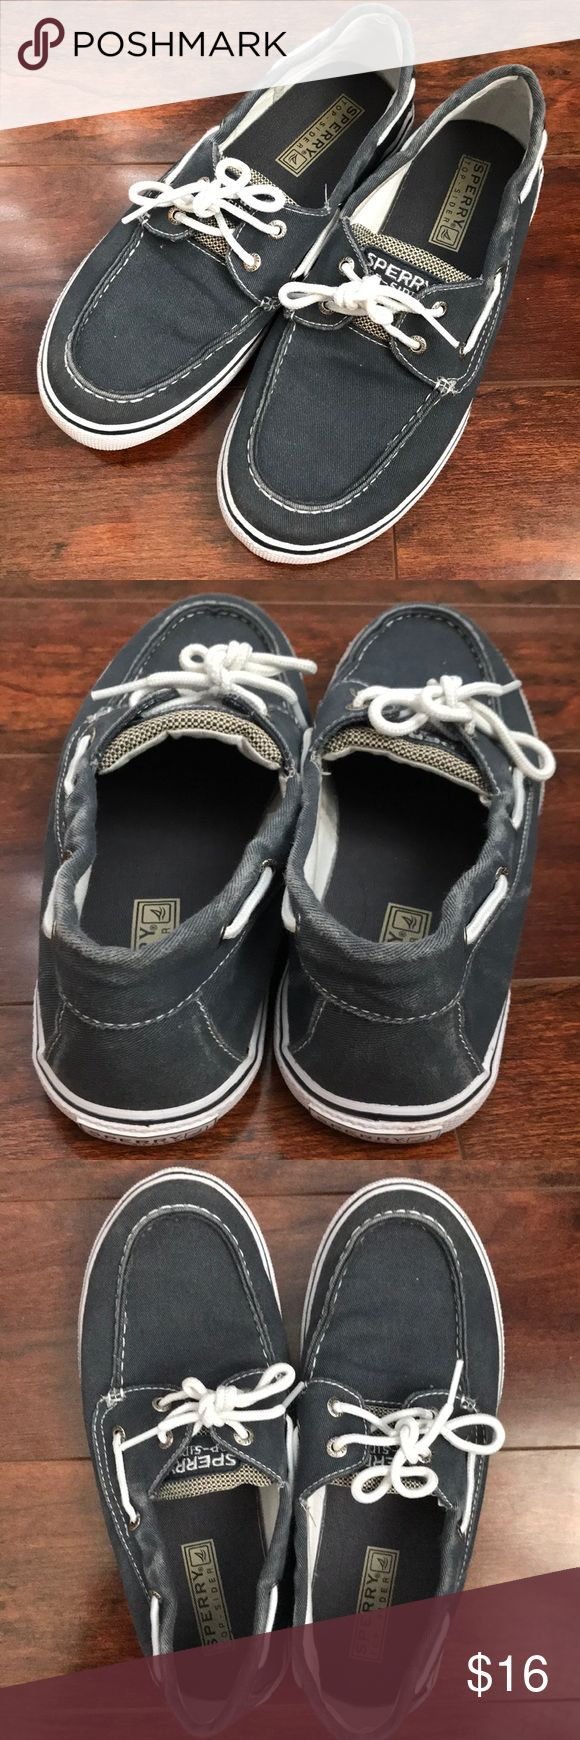 Boys Sperry Shoes Sale! Blue Sperry Top Siders in excellent condition Sperry Top-Sider Shoes Moccasins